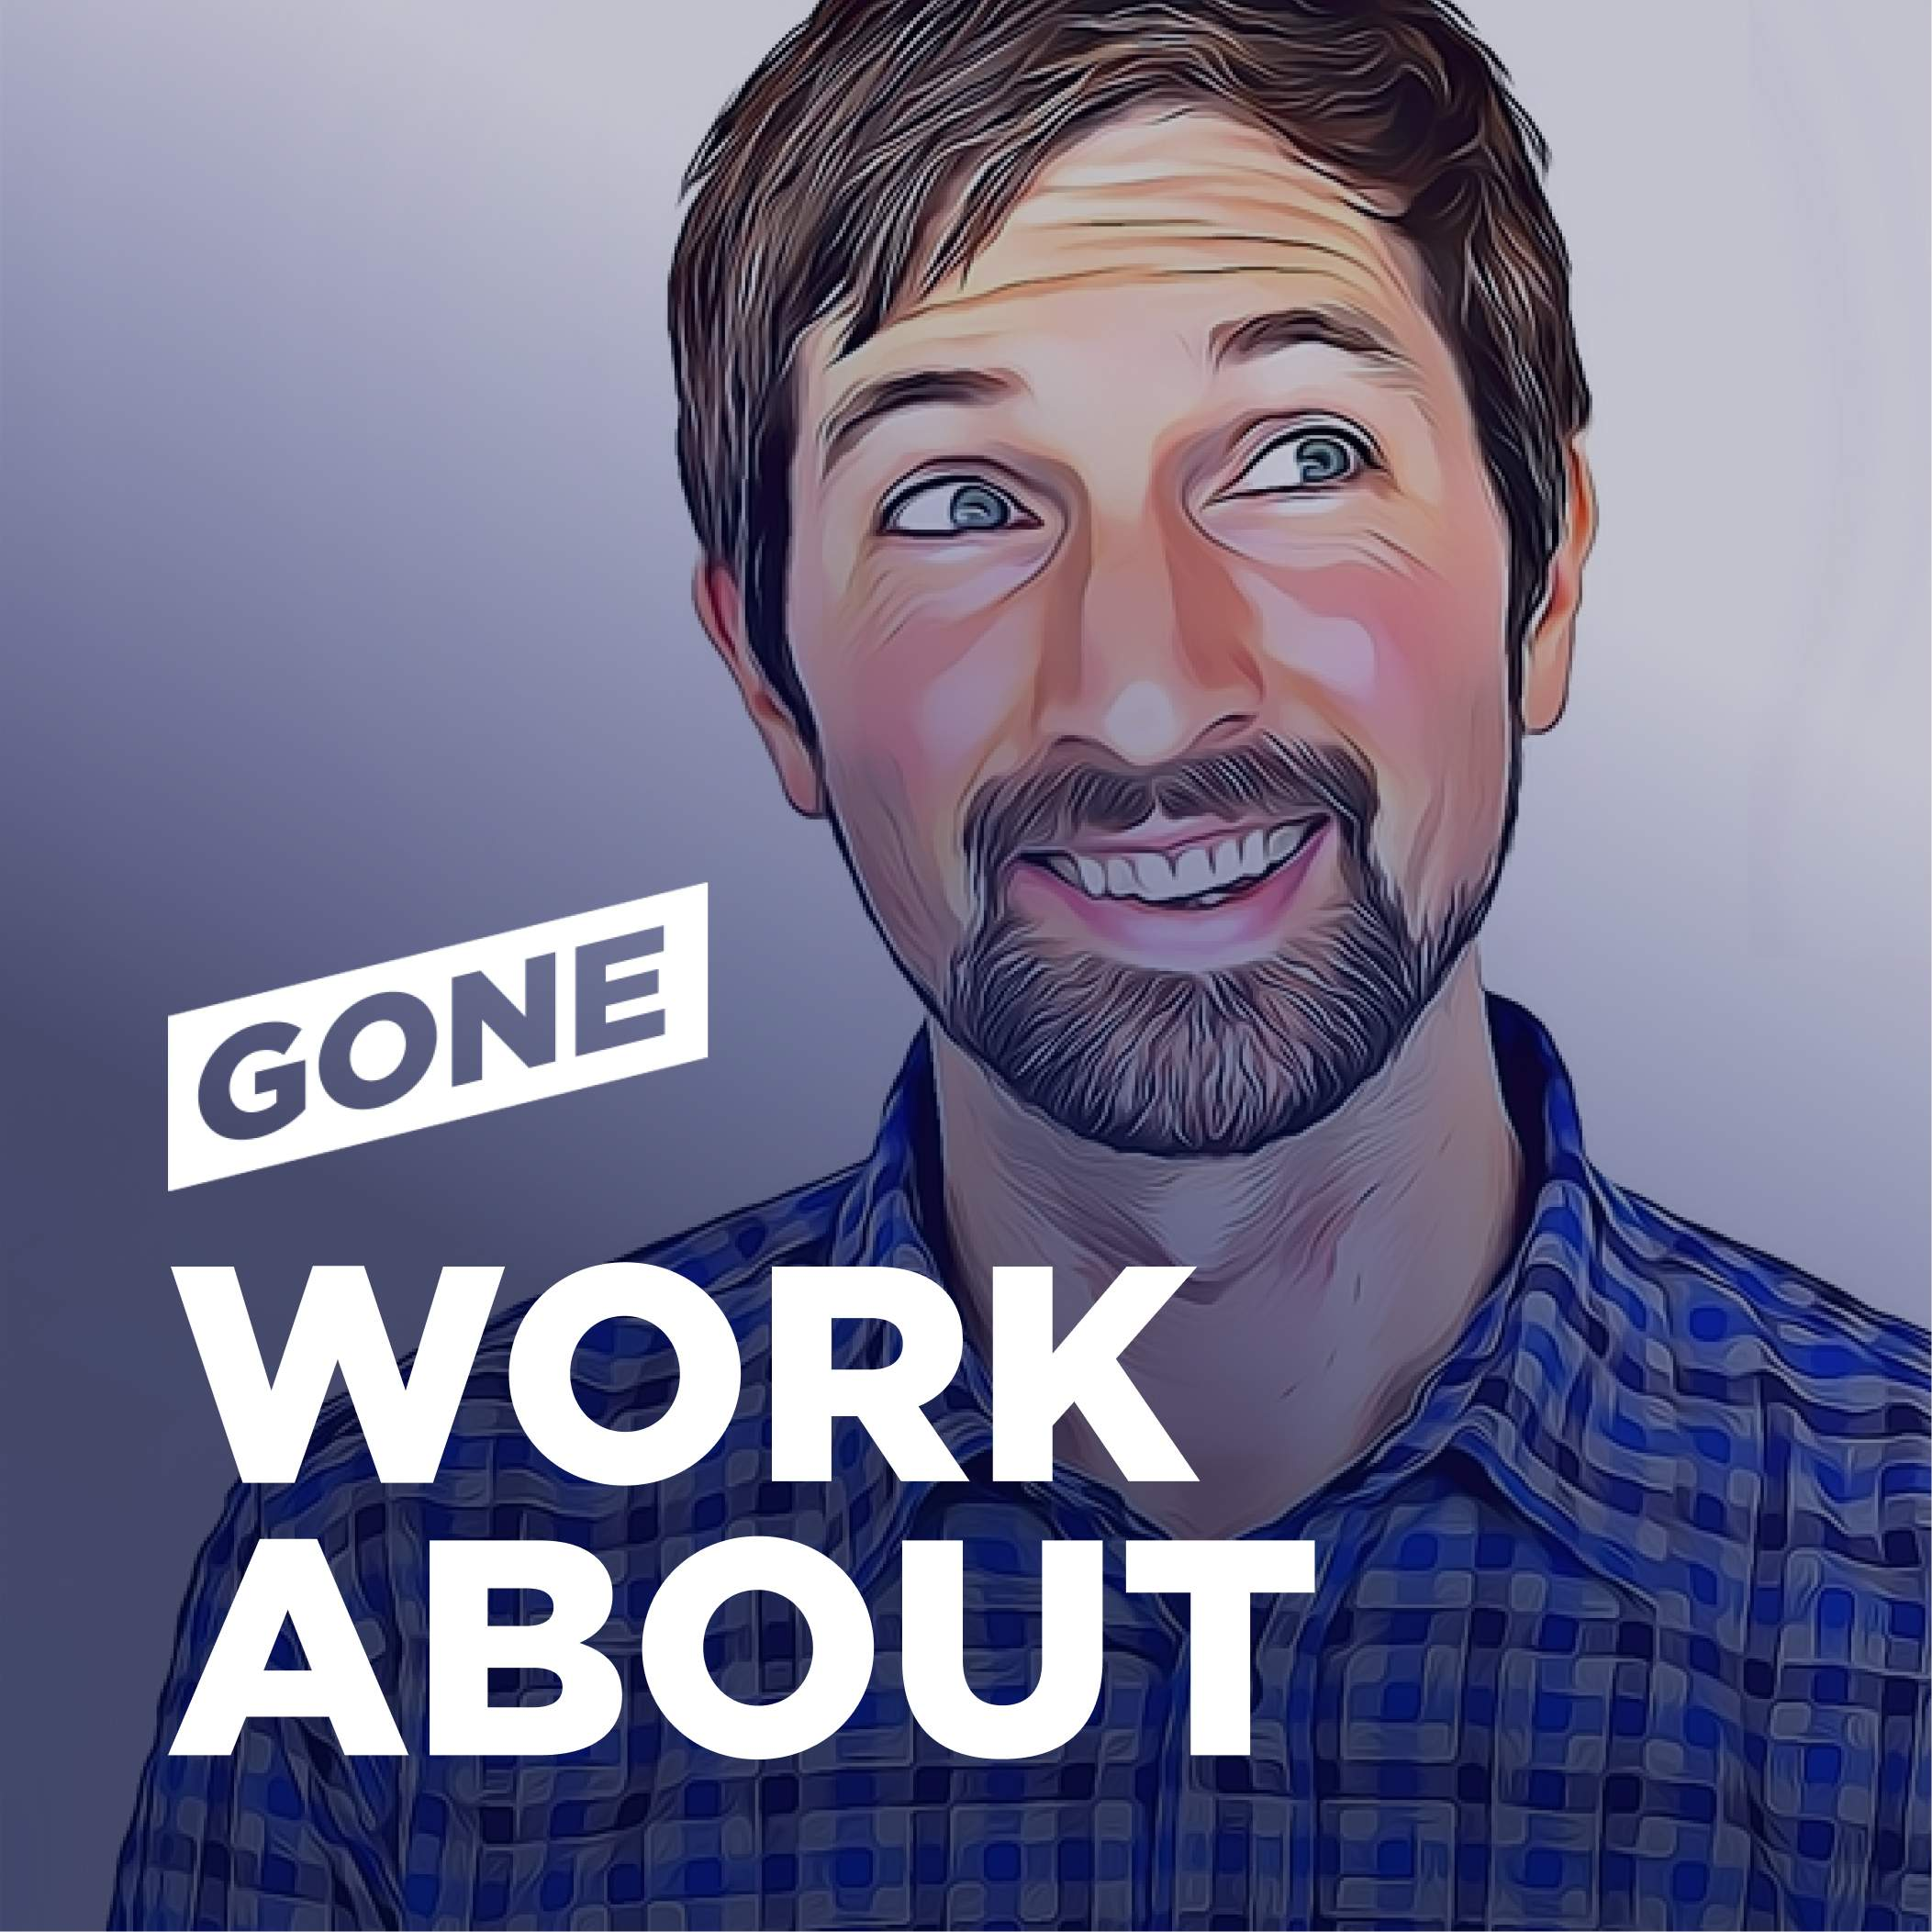 Artwork for podcast Gone Workabout